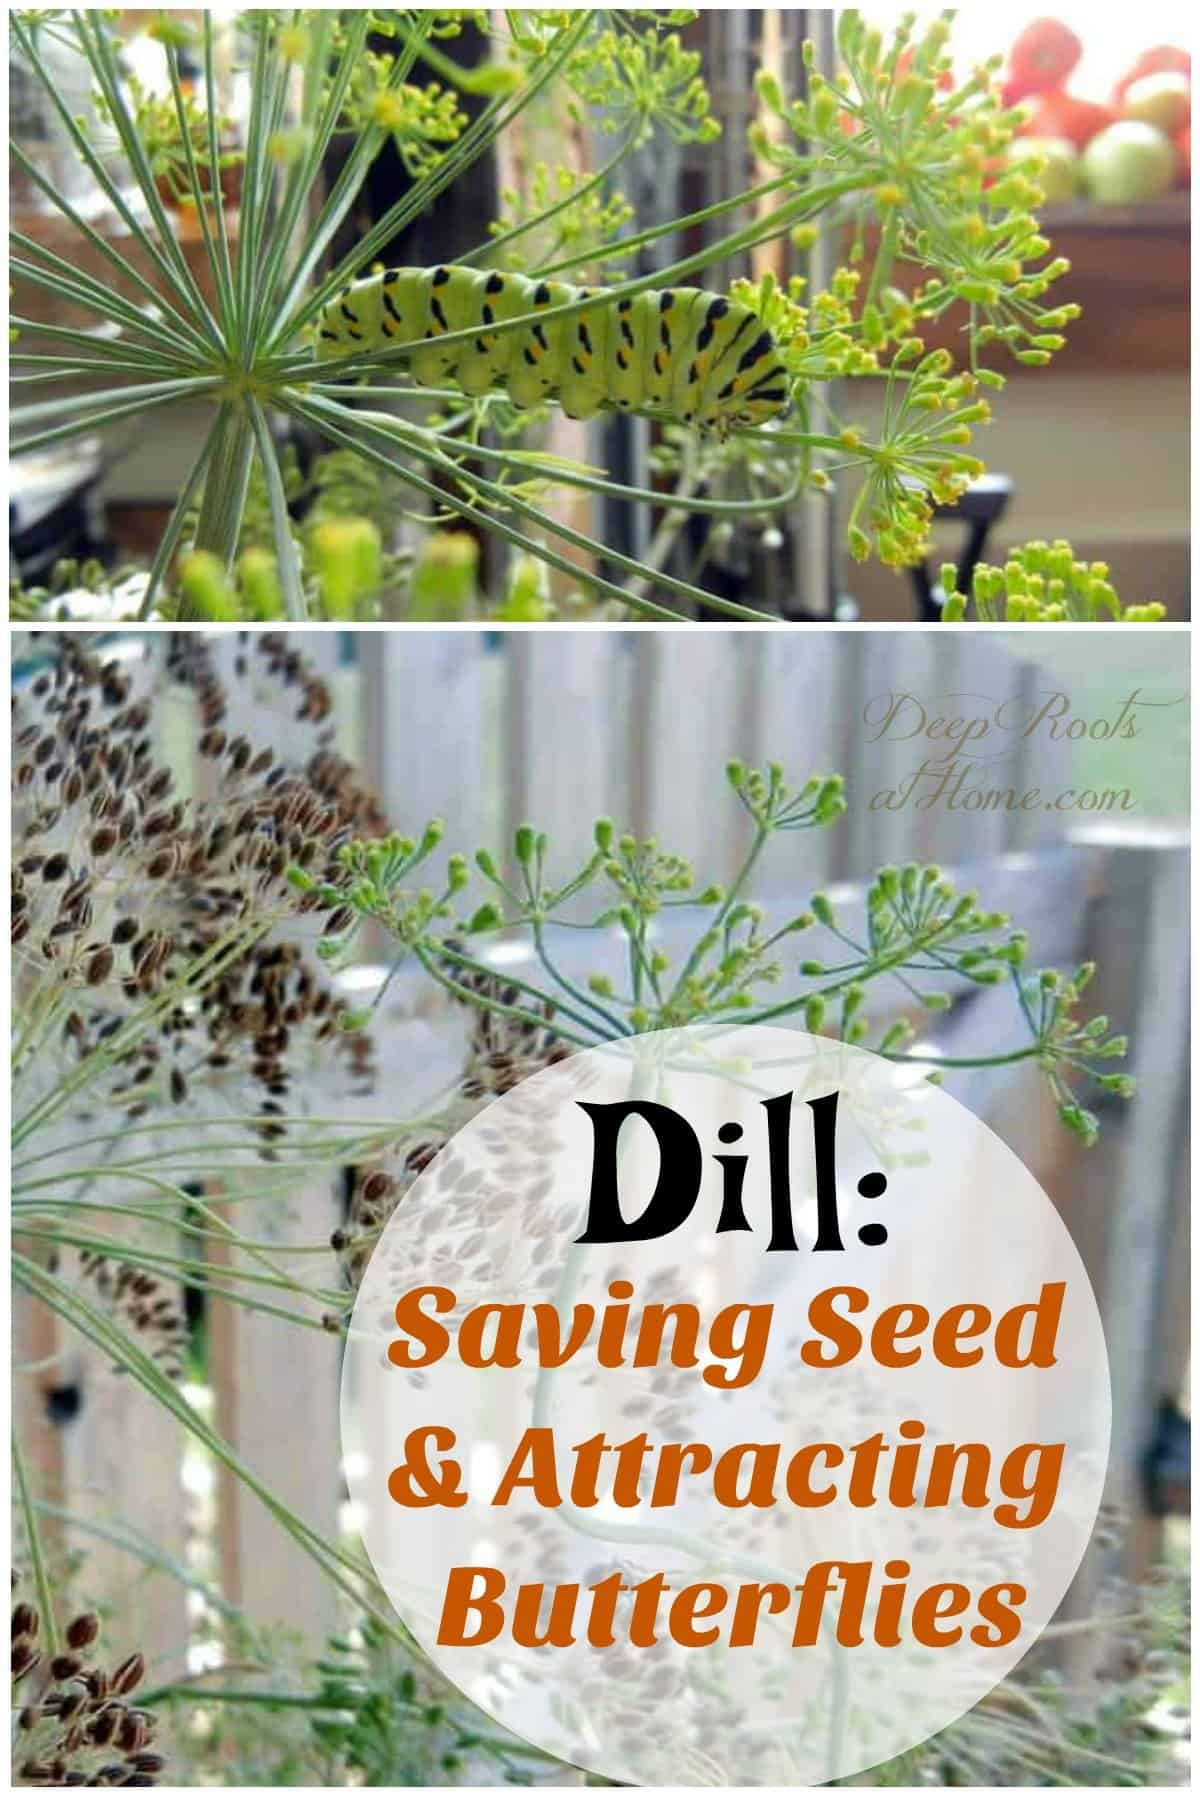 Dill: Saving Seed, Attracting Butterflies & Health Benefits.. caterpillar, eating fresh dill herb